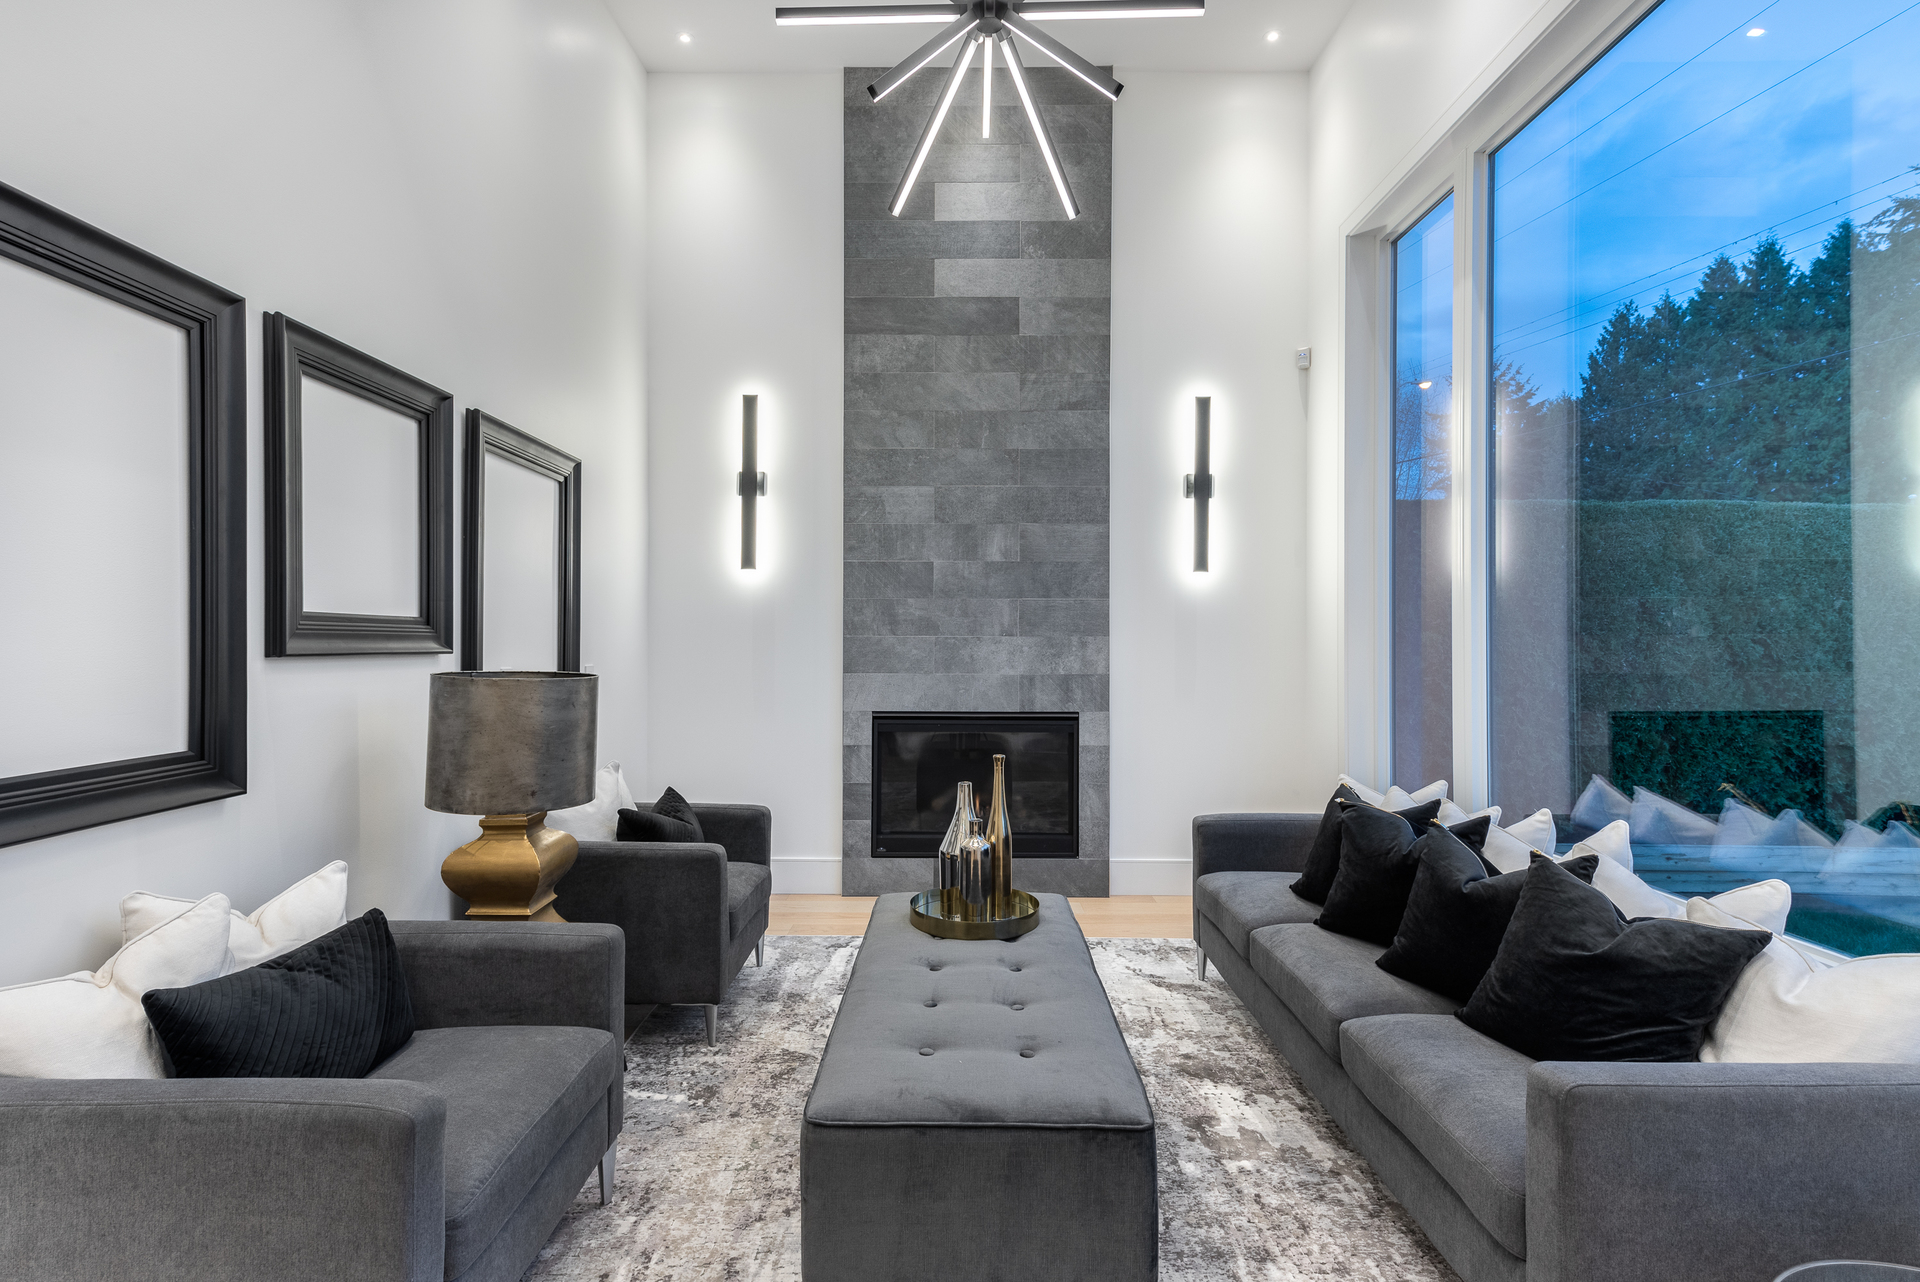 420-montgomery-st-coquitlam-360hometours-06 at